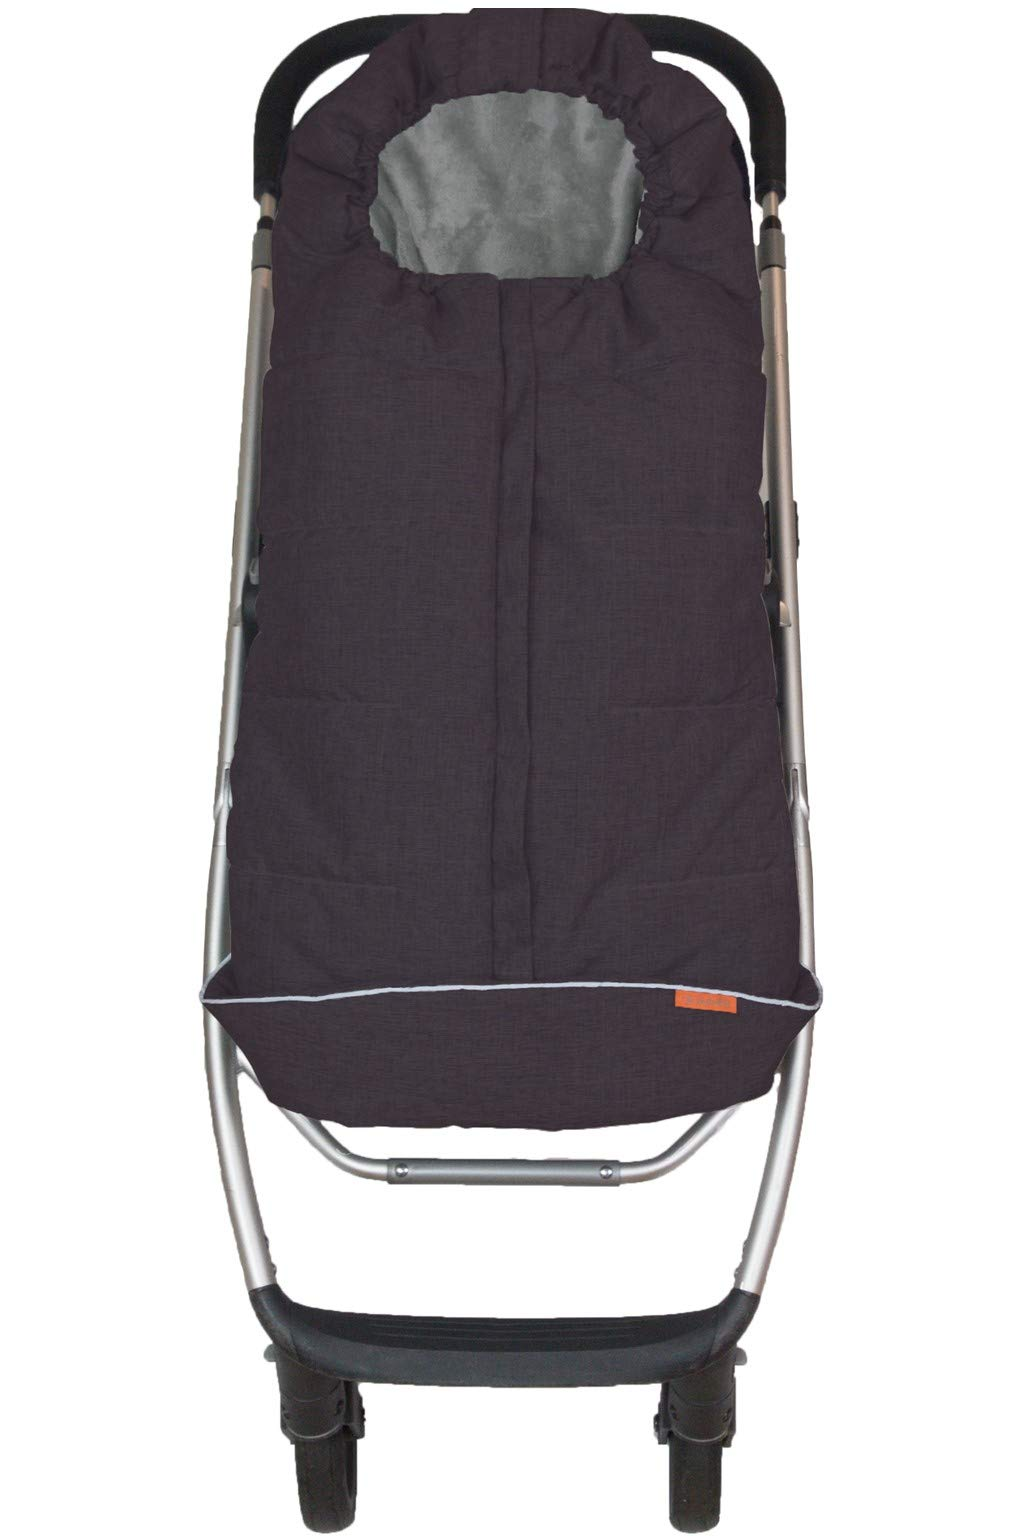 liuliuby CozyMuff Toddler Size – Weatherproof Footmuff with Temperature Control – Universal Fit for Strollers (Black Mélange)